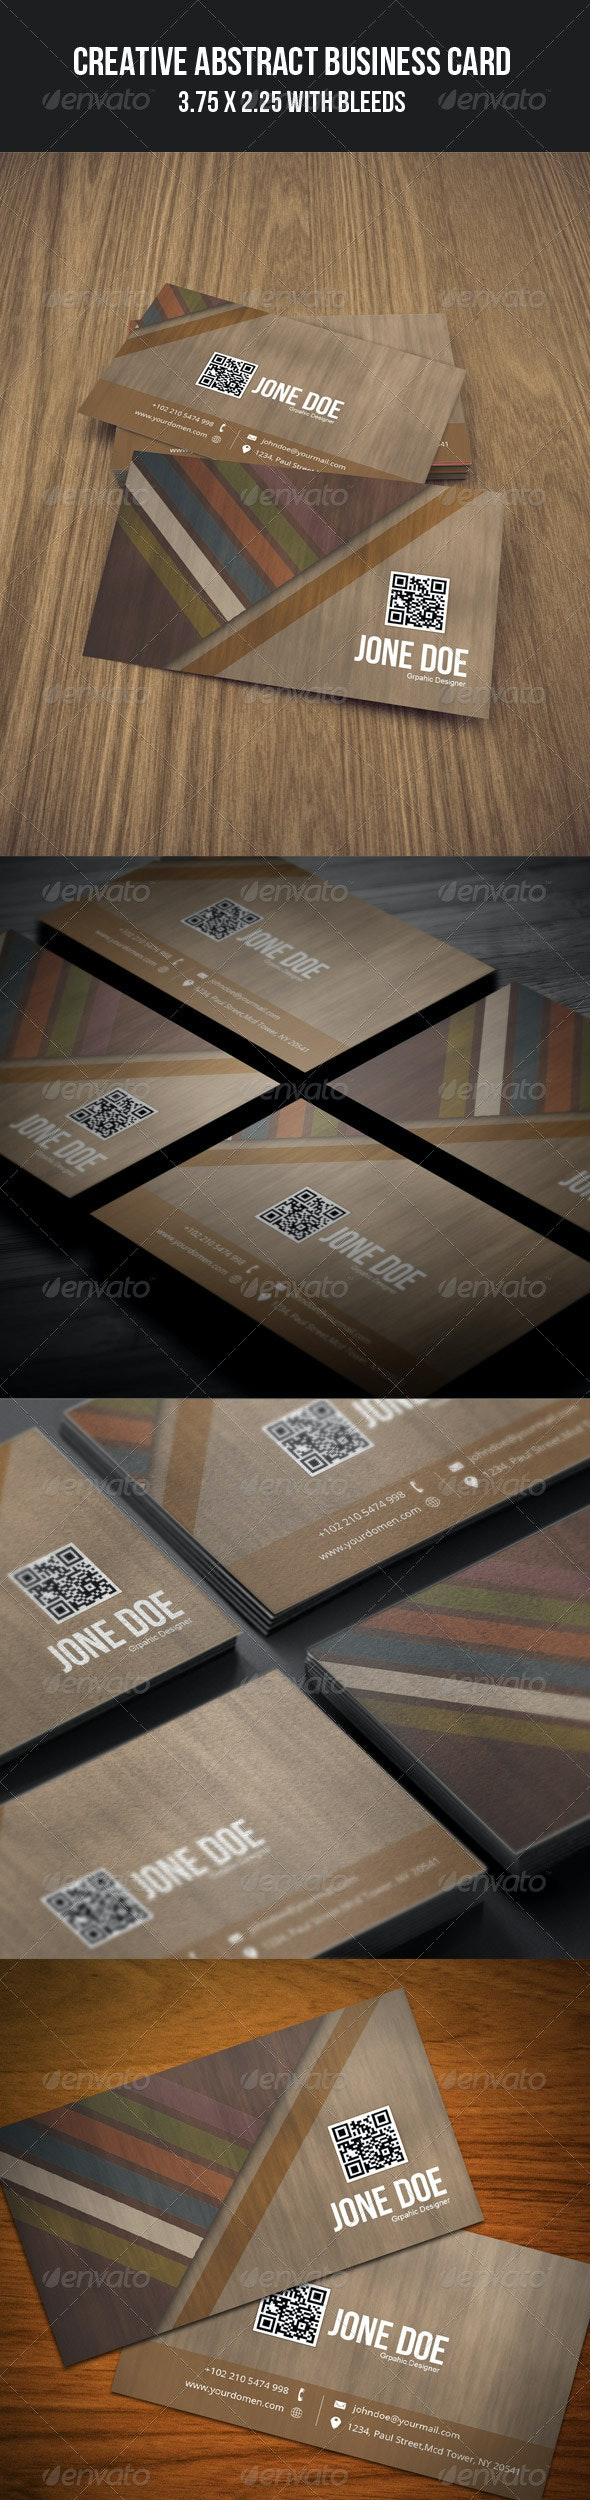 Creative Abstract Business Card - 04 - Grunge Business Cards